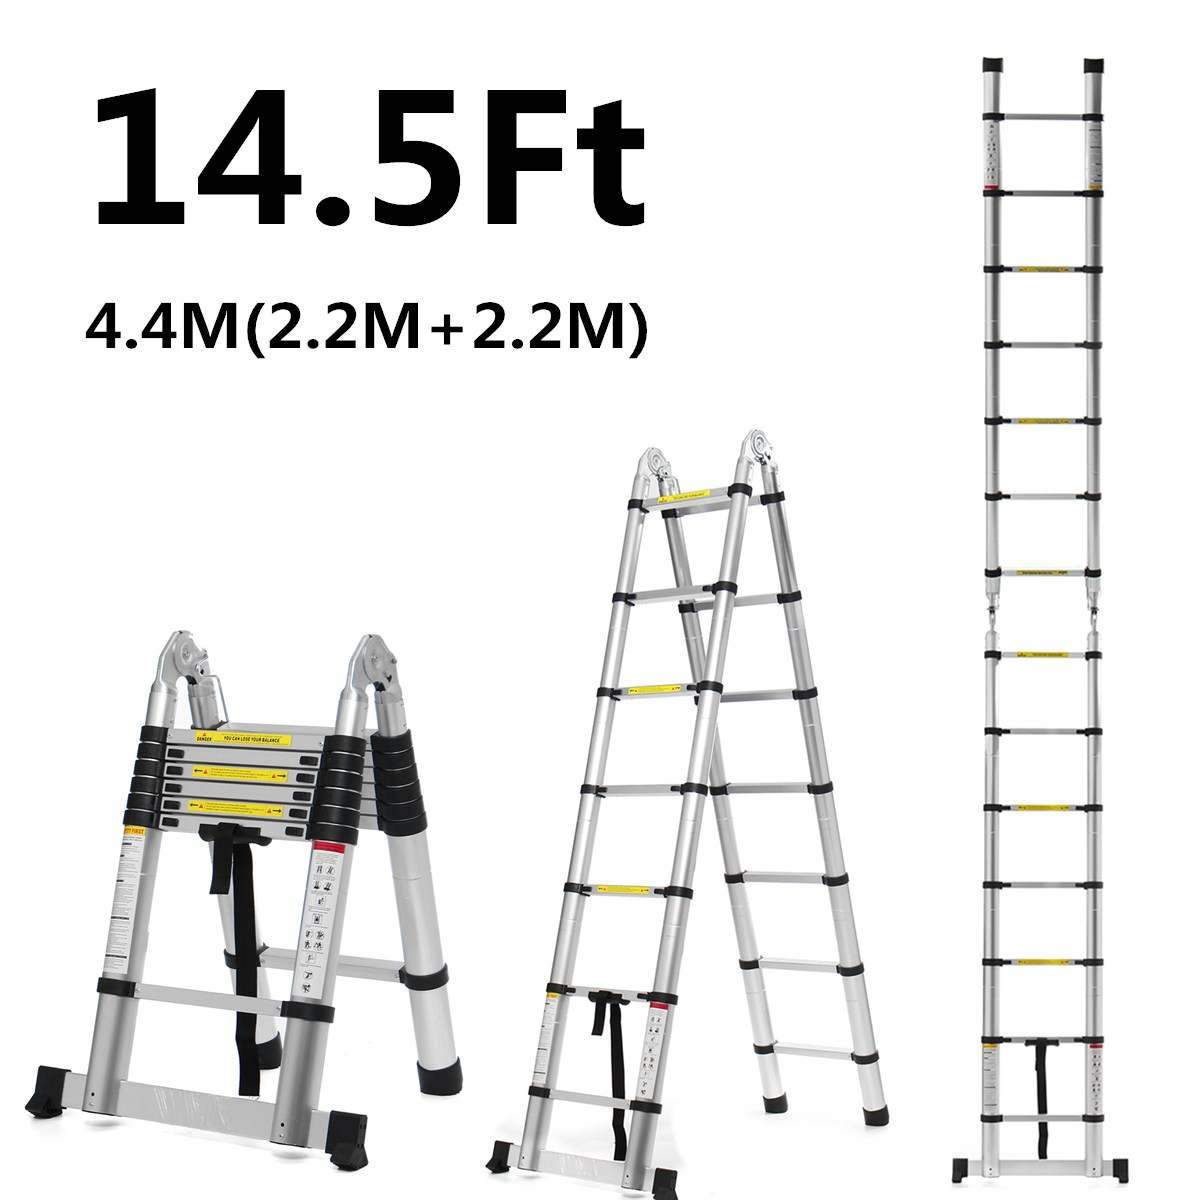 2.2m+2.2m 14.5Ft Folding Ladder Telescopic Ladders Aluminium Dual-Use Herringbone Ladder Multifunctional Single Extension Tools